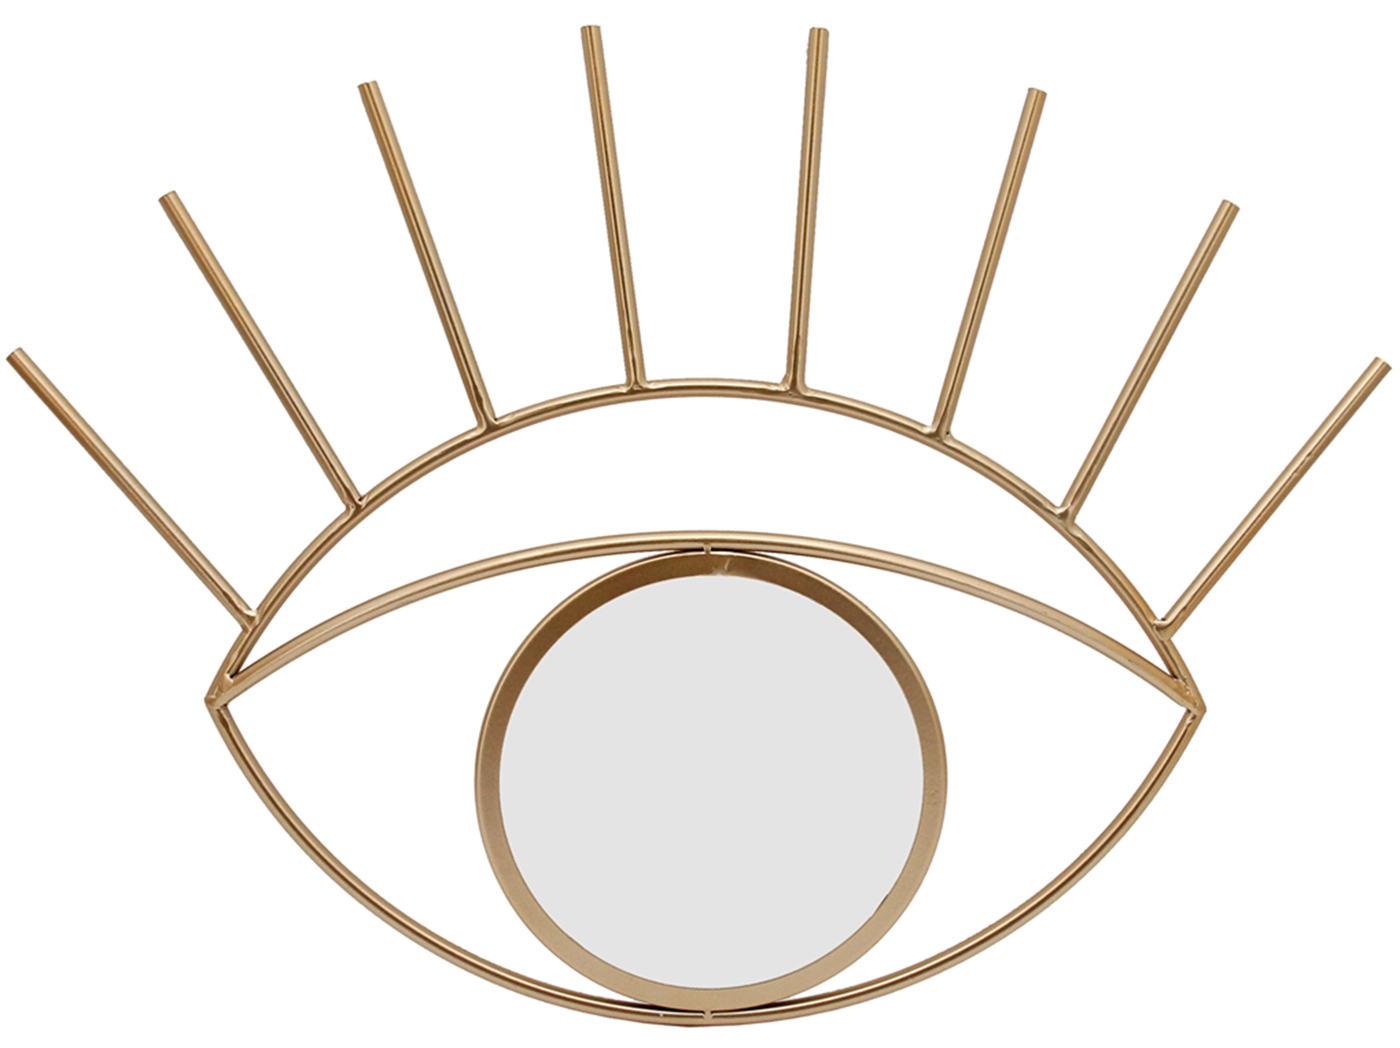 "Gold Metal Eye Mirror 31.5X18""H"